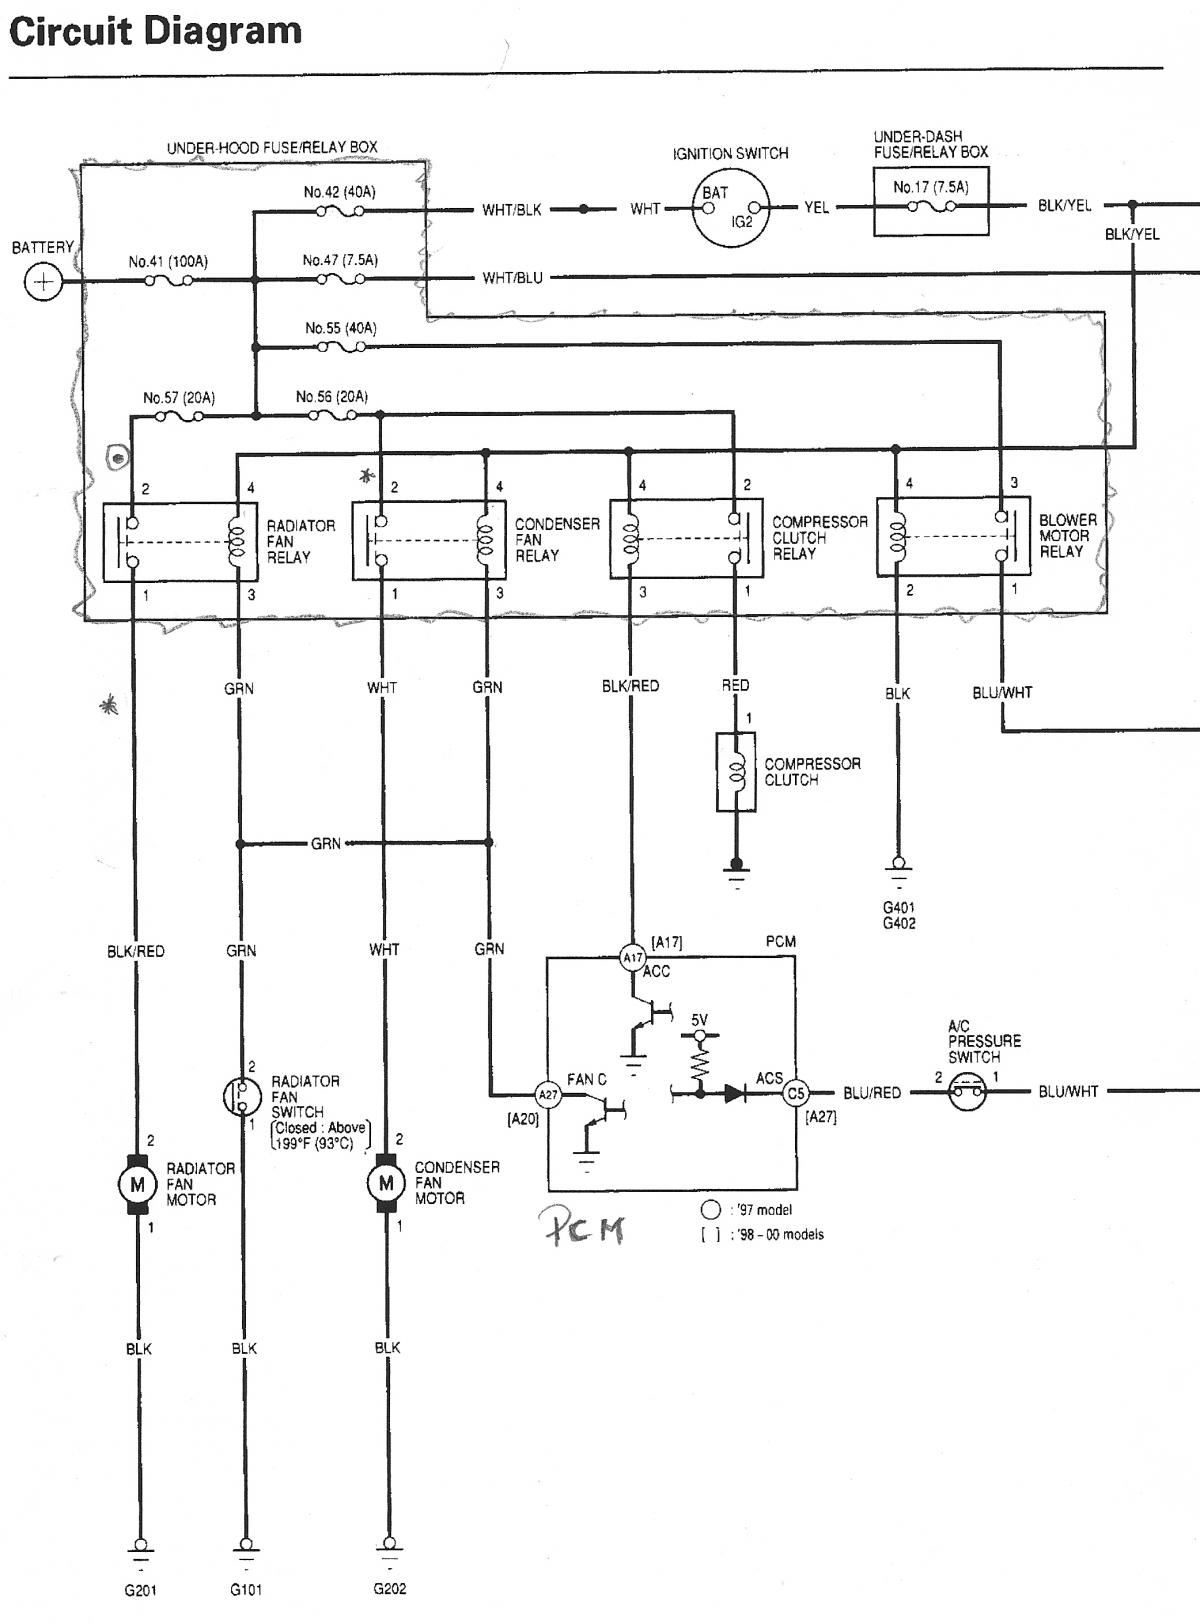 [SCHEMATICS_4FD]  141316B Audi 4 2 Wiring Diagram | Wiring Resources | Wiring Diagram Radio 98 Audi A4 Quattro |  | Wiring Resources